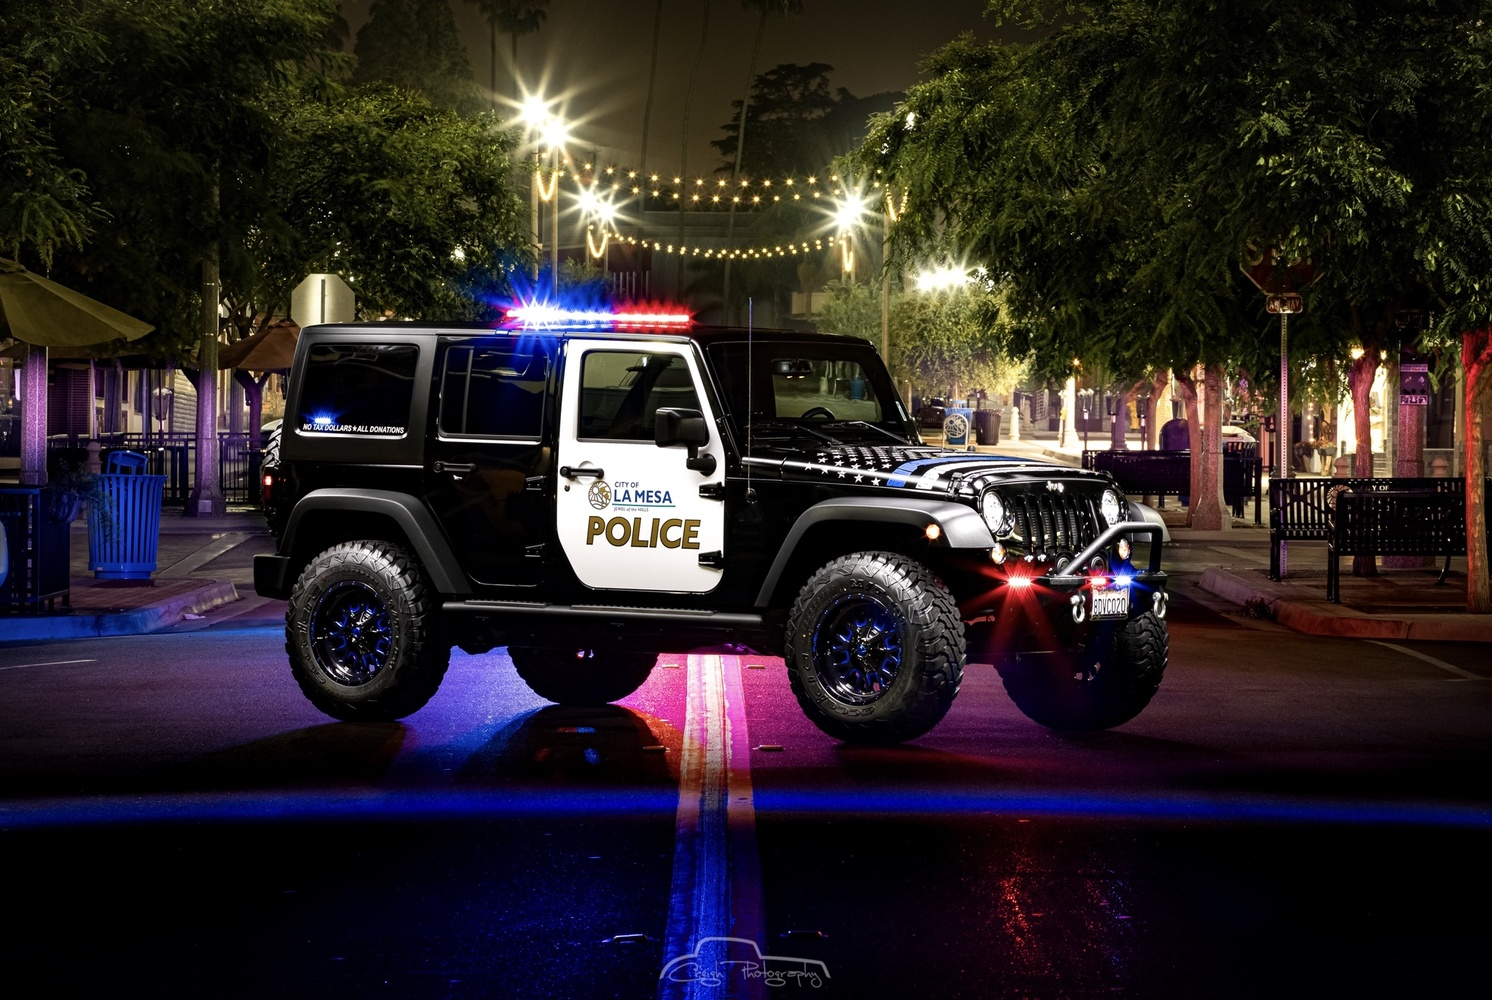 To Protect, Serve, and Off-road by Creigh McIntyre